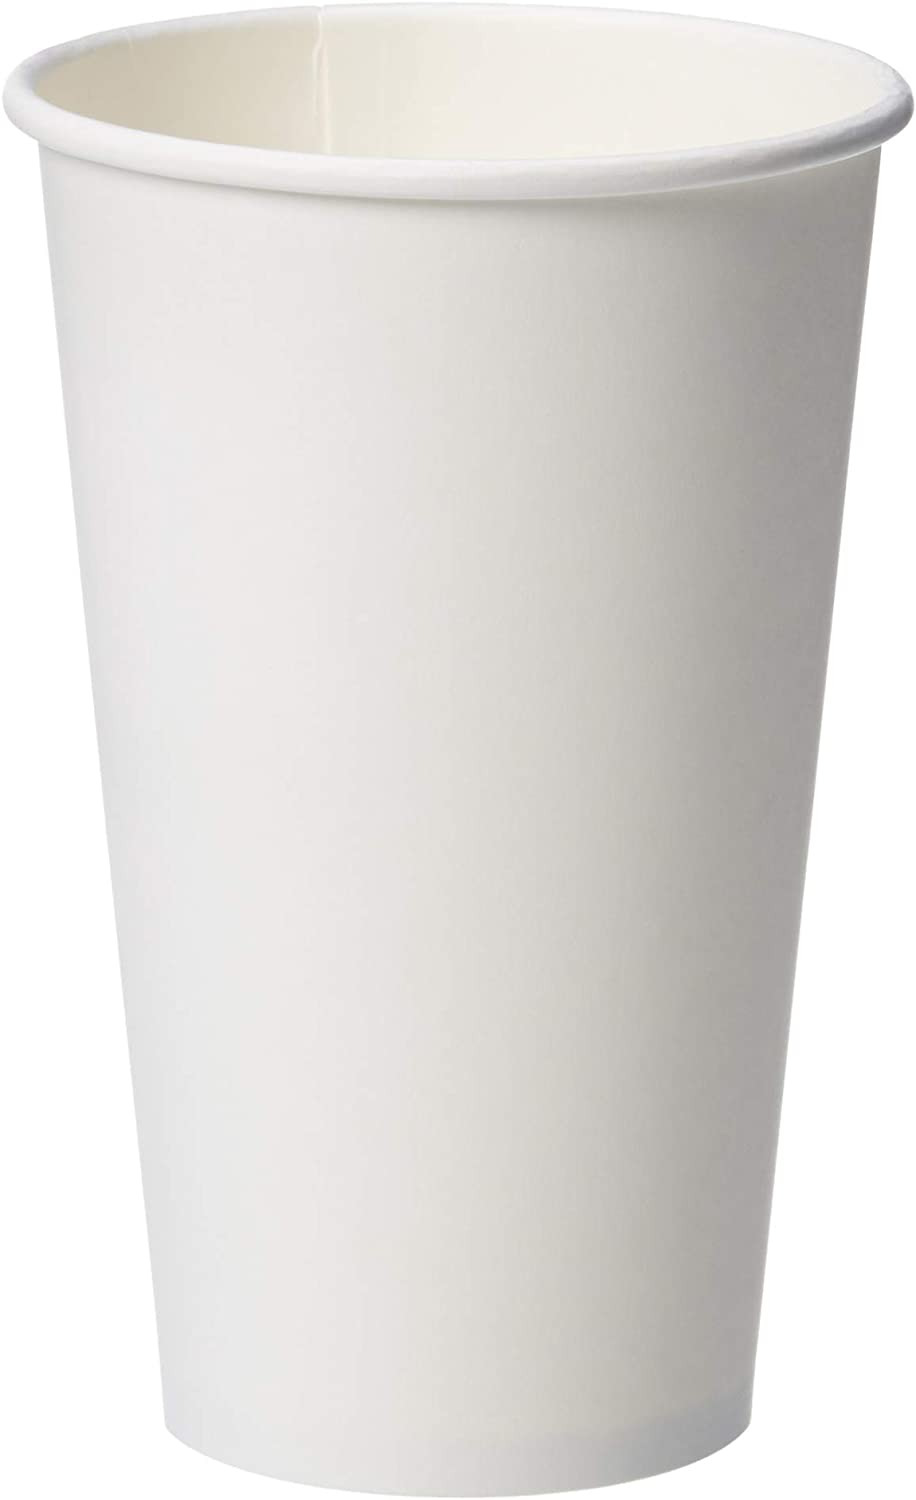 AmazonBasics Compostable 16 oz. Hot Paper Cup, Pack of 500